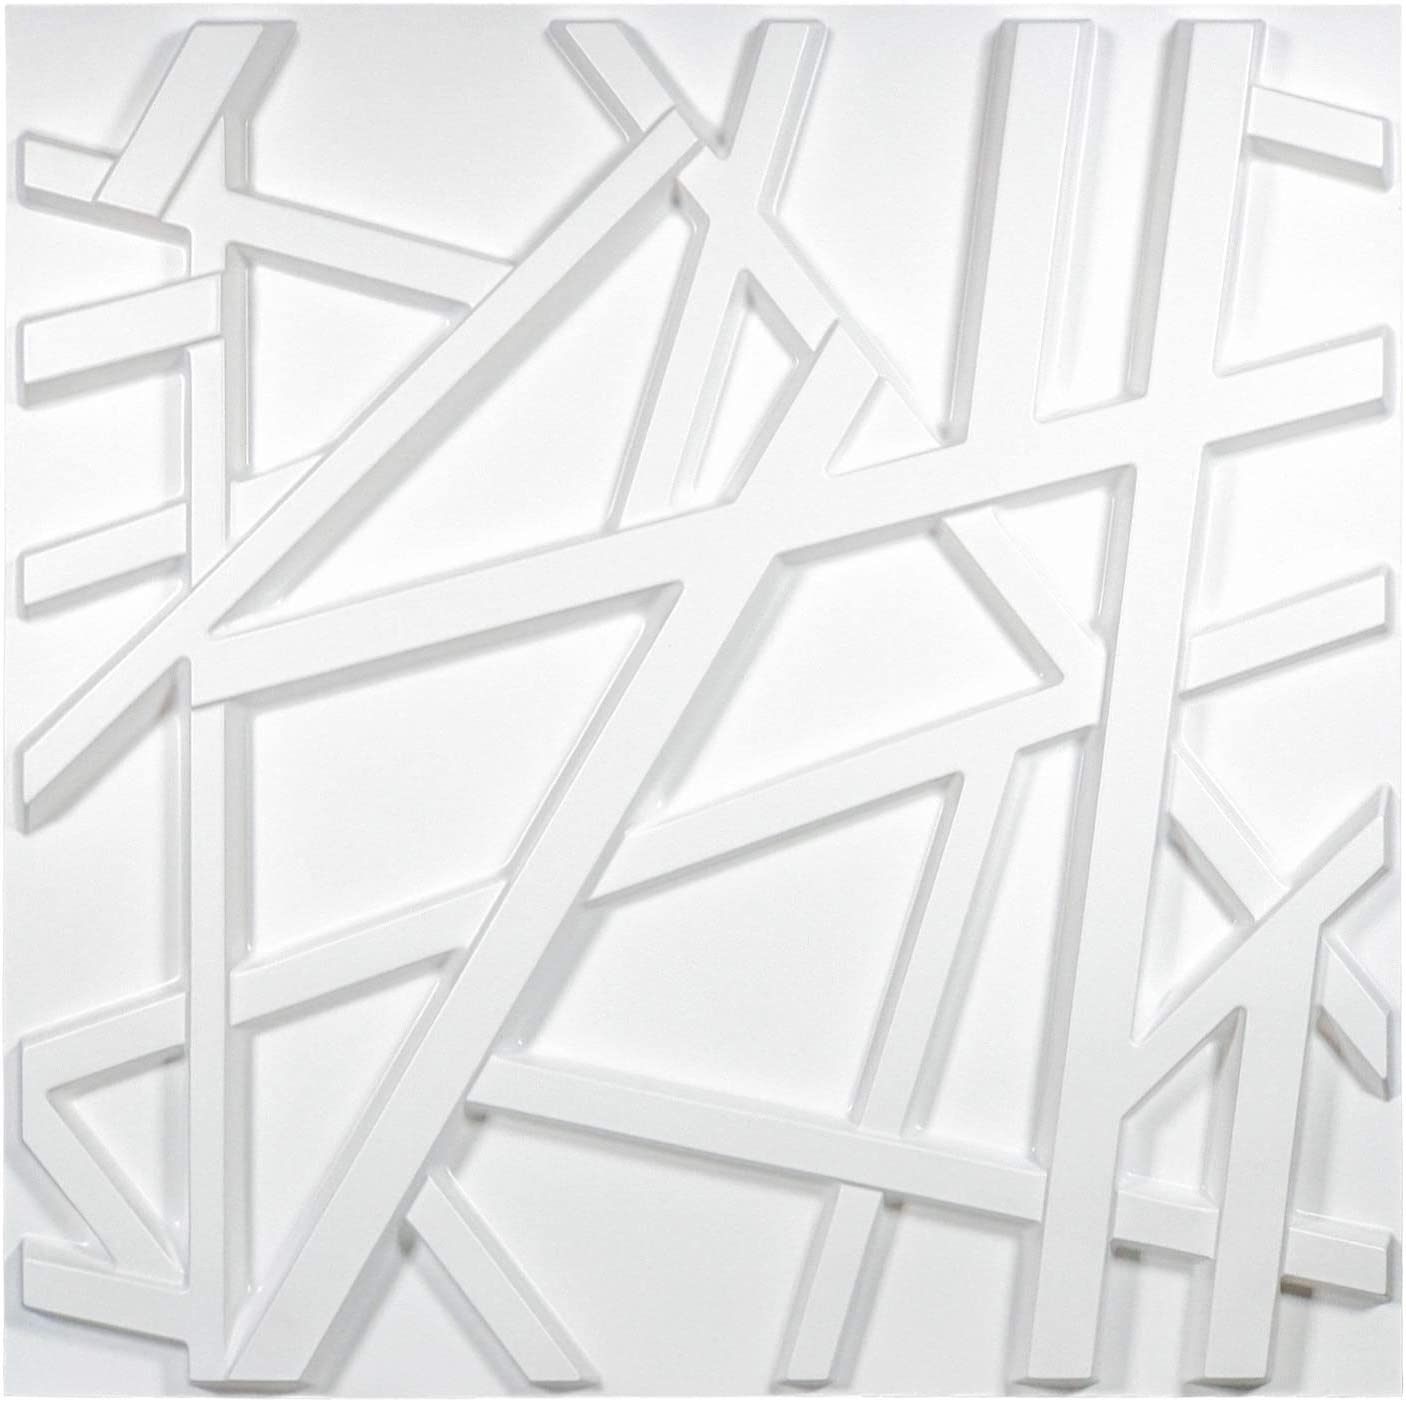 Art3d Matt White PVC 3D Wall Panel Geometric Crossing Lines Cover 32 Sqft, for Residential and Commercial Interior Décor